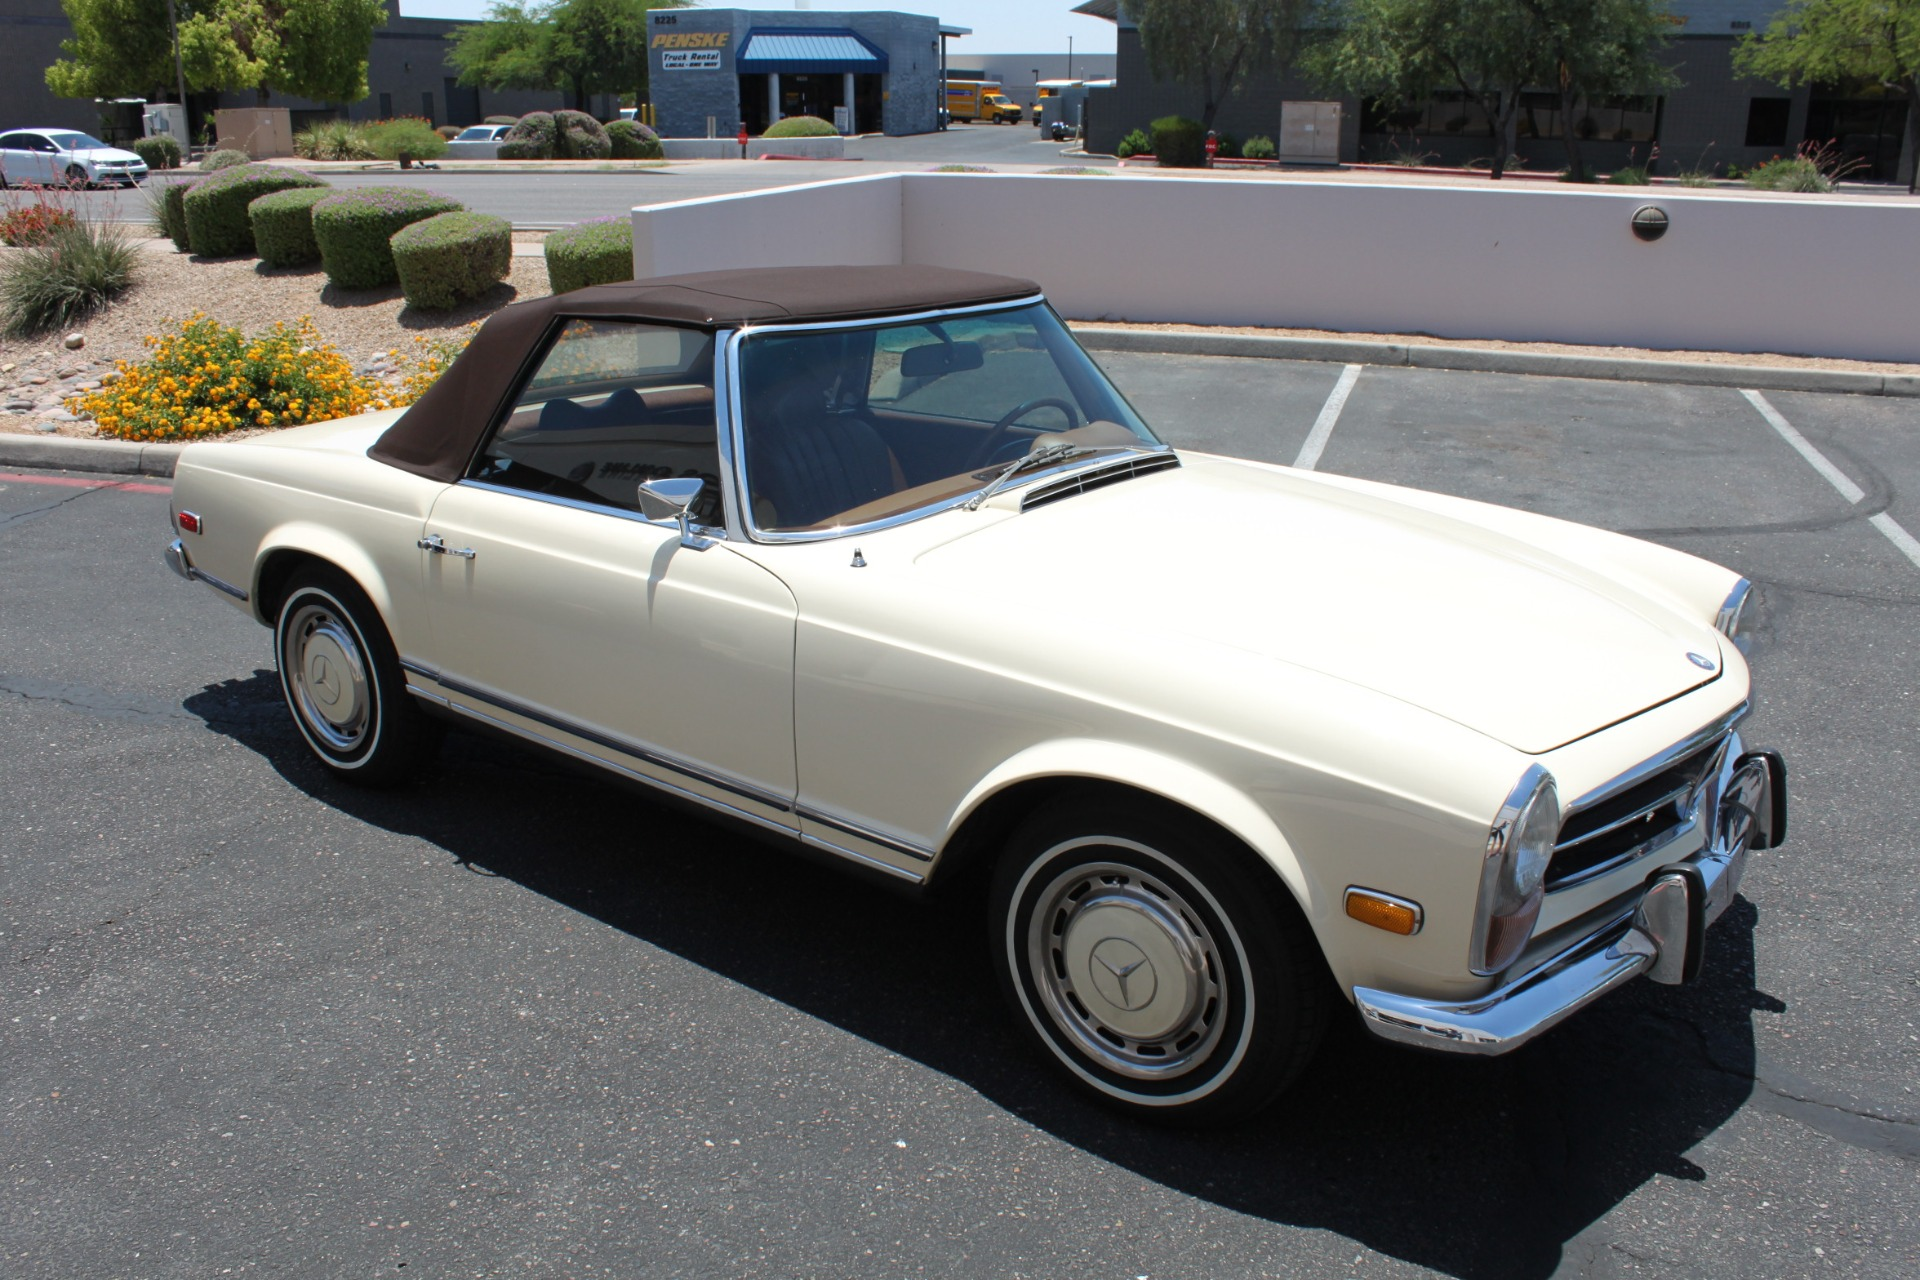 Used-1971-Mercedes-Benz-280SL-Convertible-Chevelle